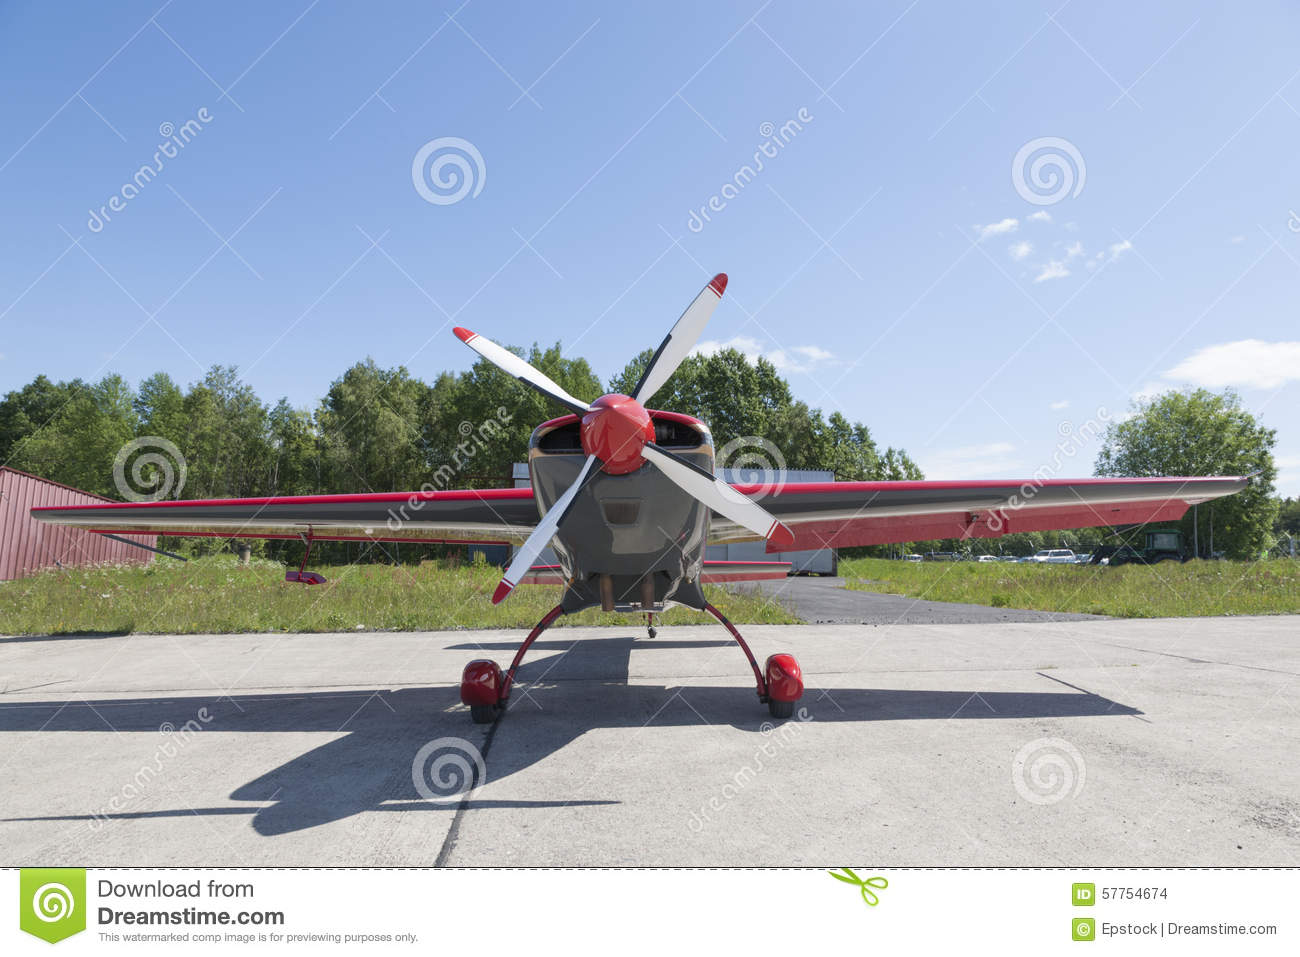 Small Plane With Central Propeller Stock Photo Image